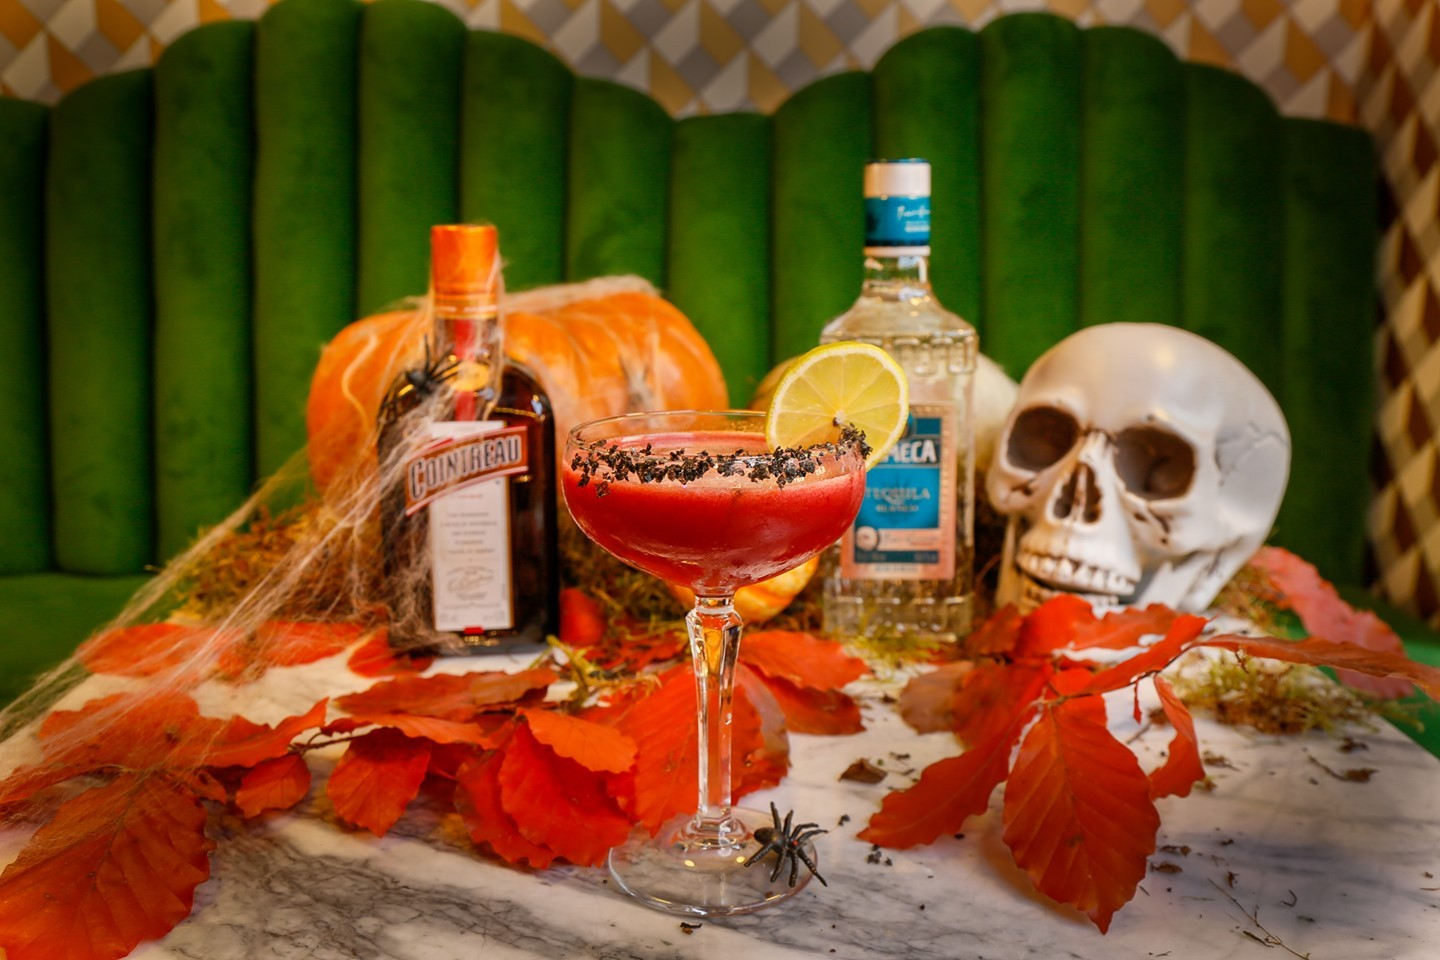 Mrs Riot's famous Black Margarita has had a spooky makeover! Are you ready for a week of spooks & scares with us?